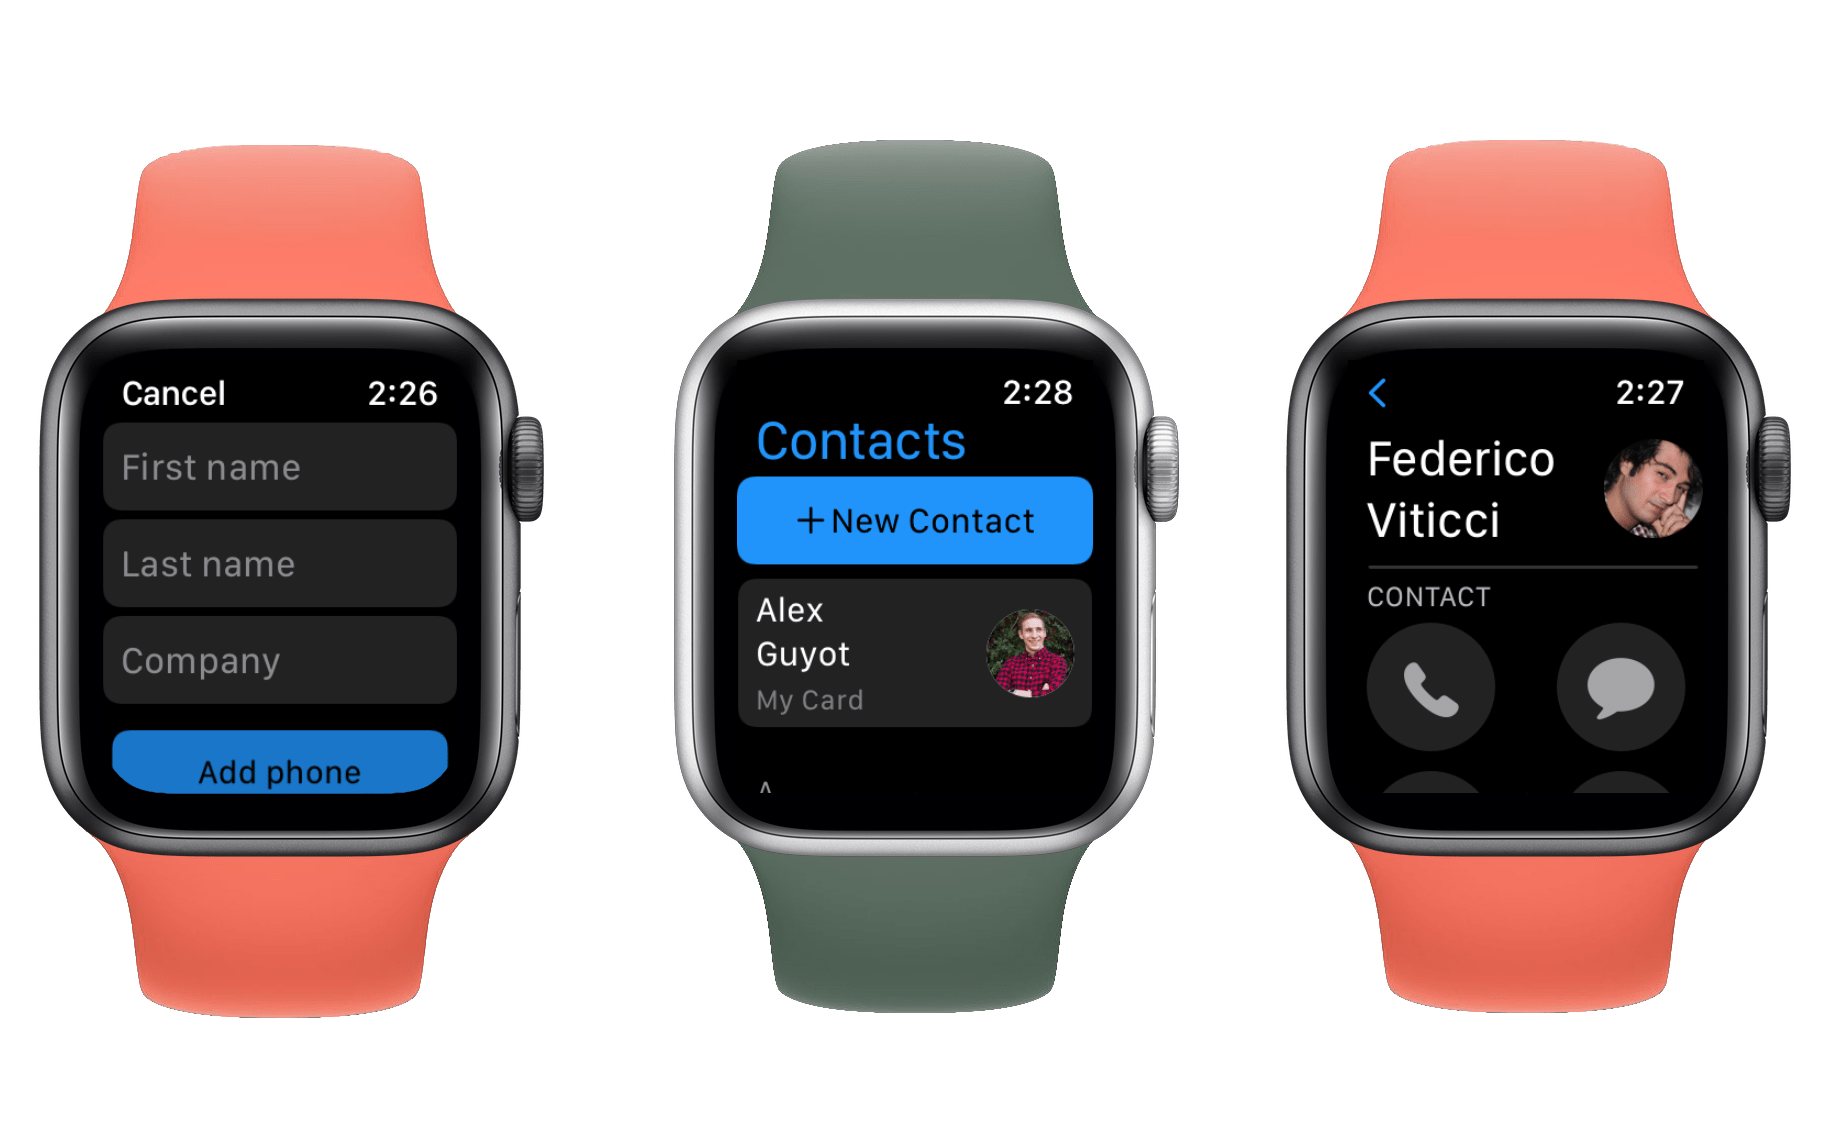 Creating and viewing contacts in watchOS 8.